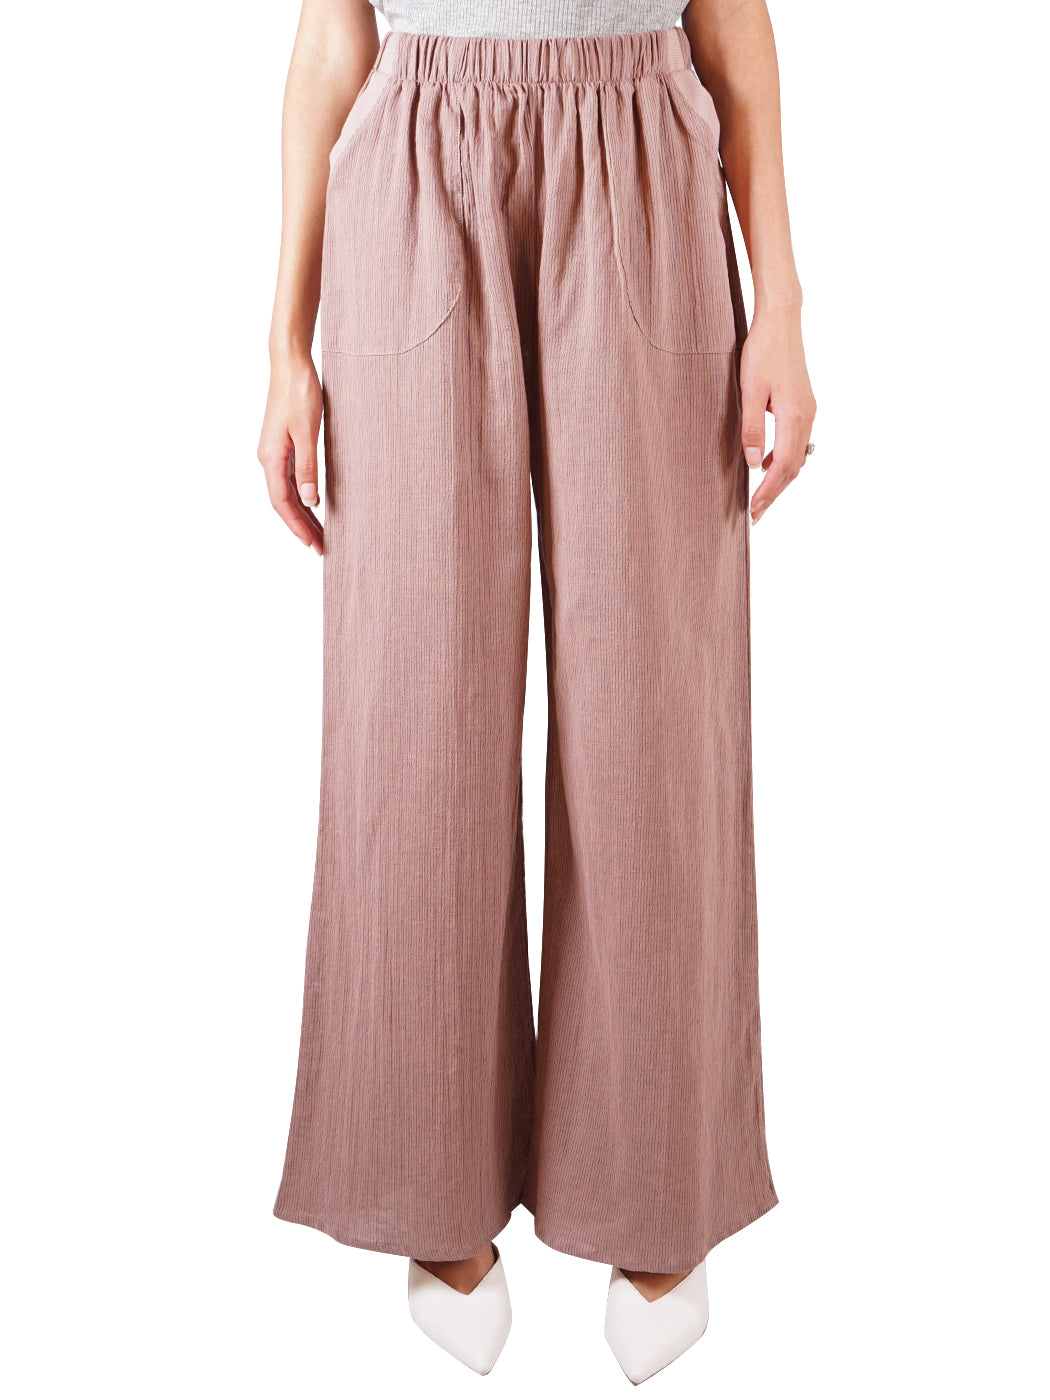 Casual Cotton Elastic Waist Pants